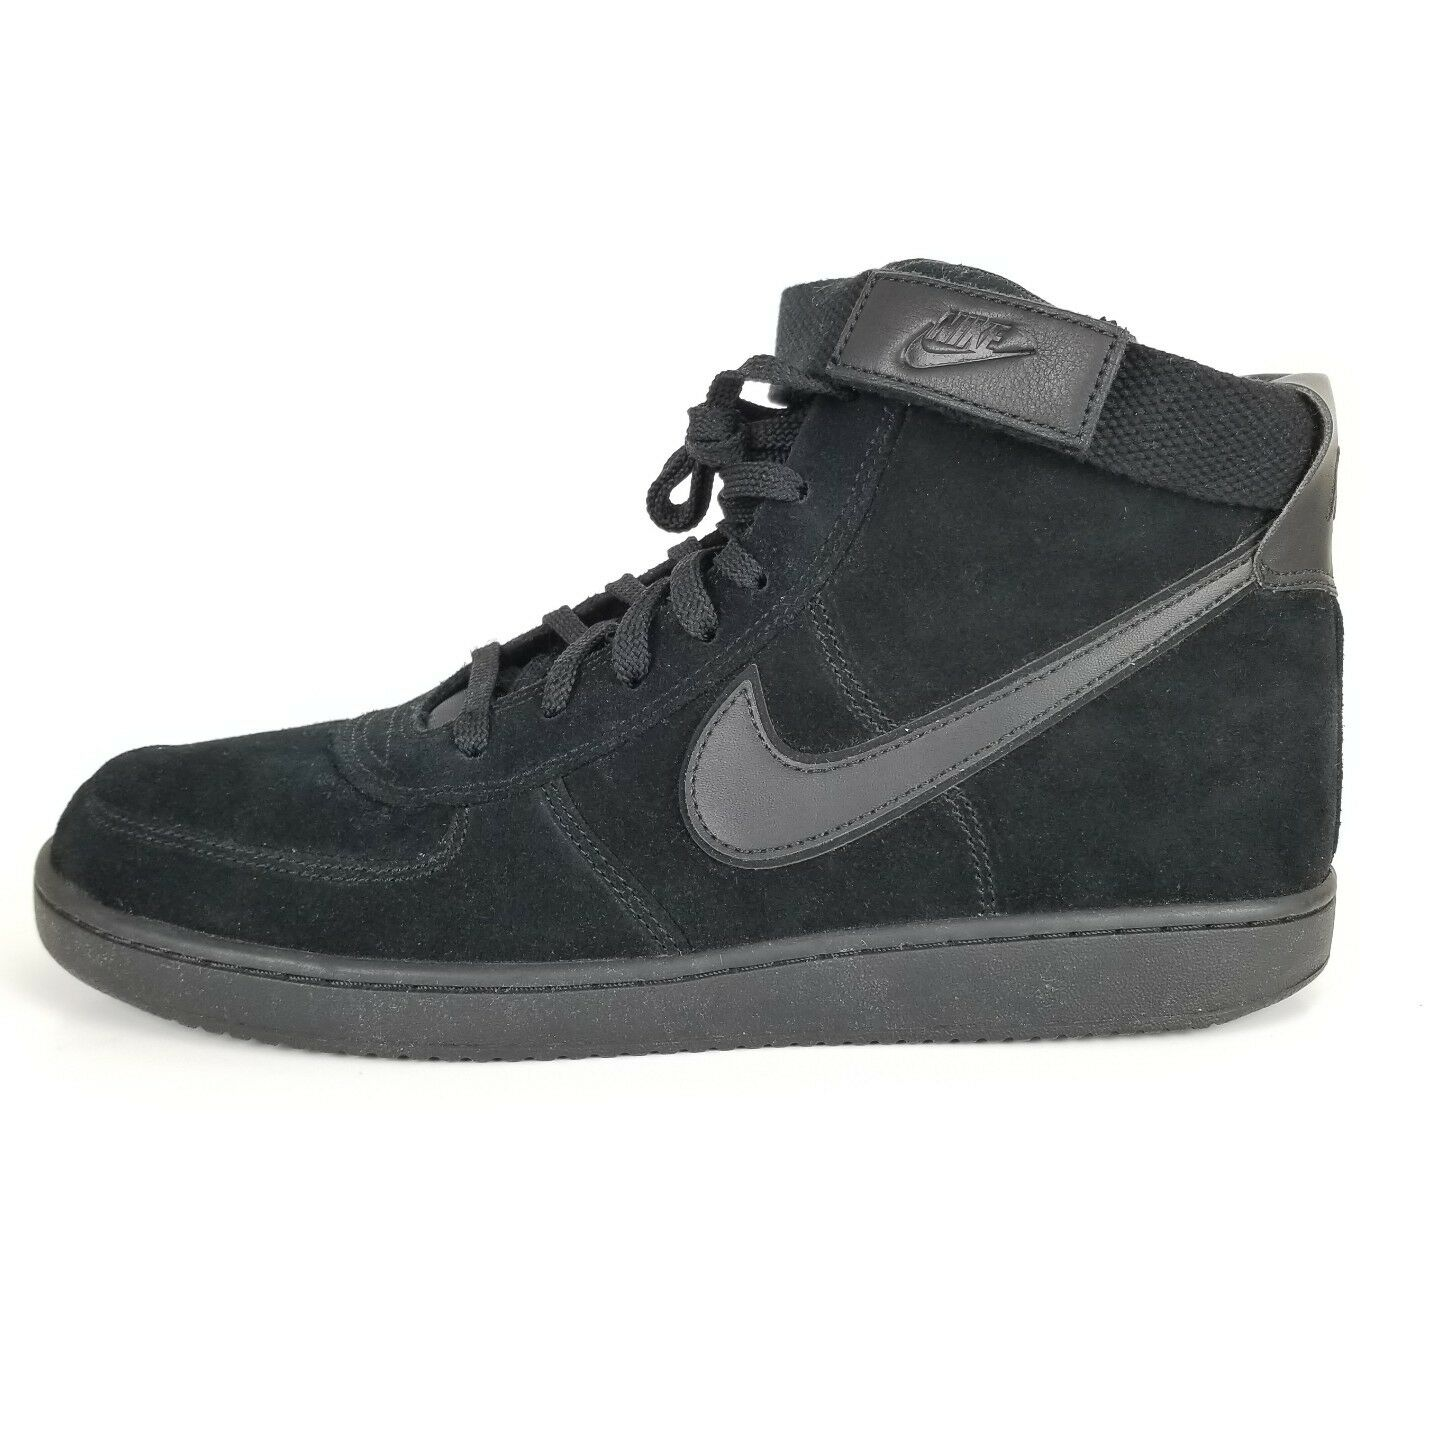 Nike Vandal High Supreme LTR John Elliot AH8518-001 Triple Black Men's Shoes